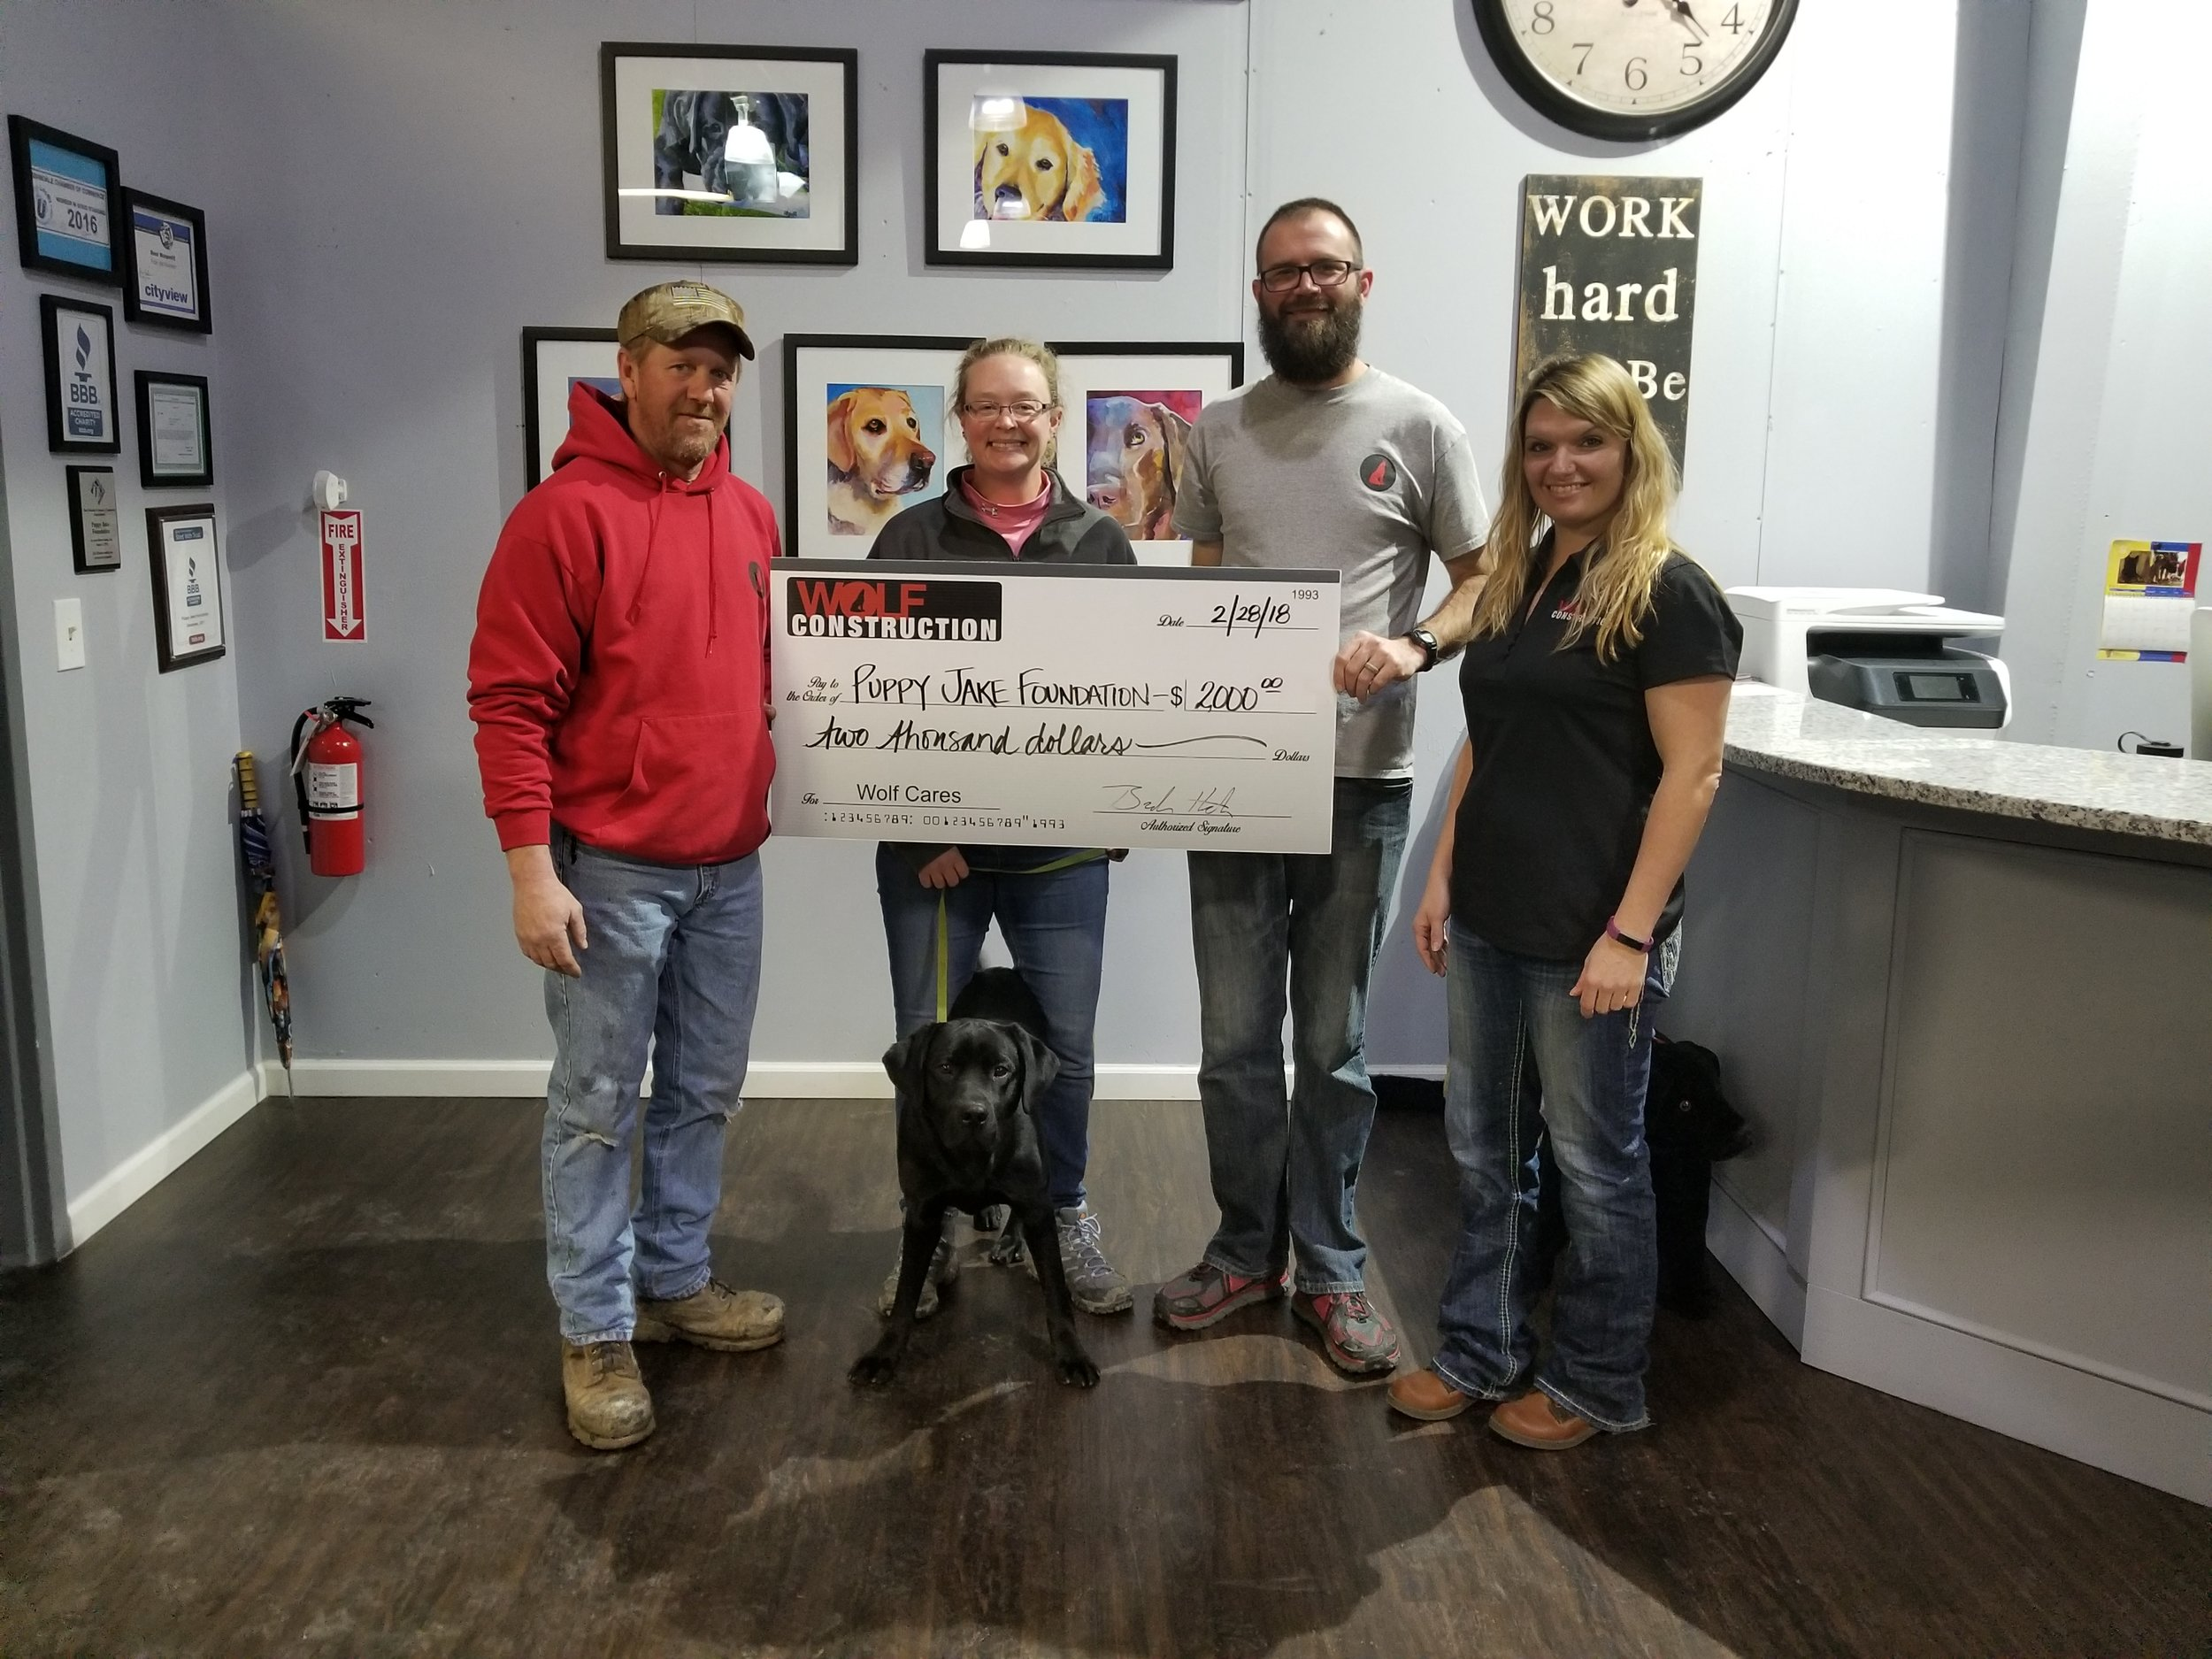 Puppy Jake Foundation - Puppy Jake Foundation is dedicated to helping military veterans through the assistance of well bred, socialized and professionally trained service dogs. Nominated by Michael Jennings.Visit the Puppy Jake Foundation website for more information:Puppy Jake Foundation